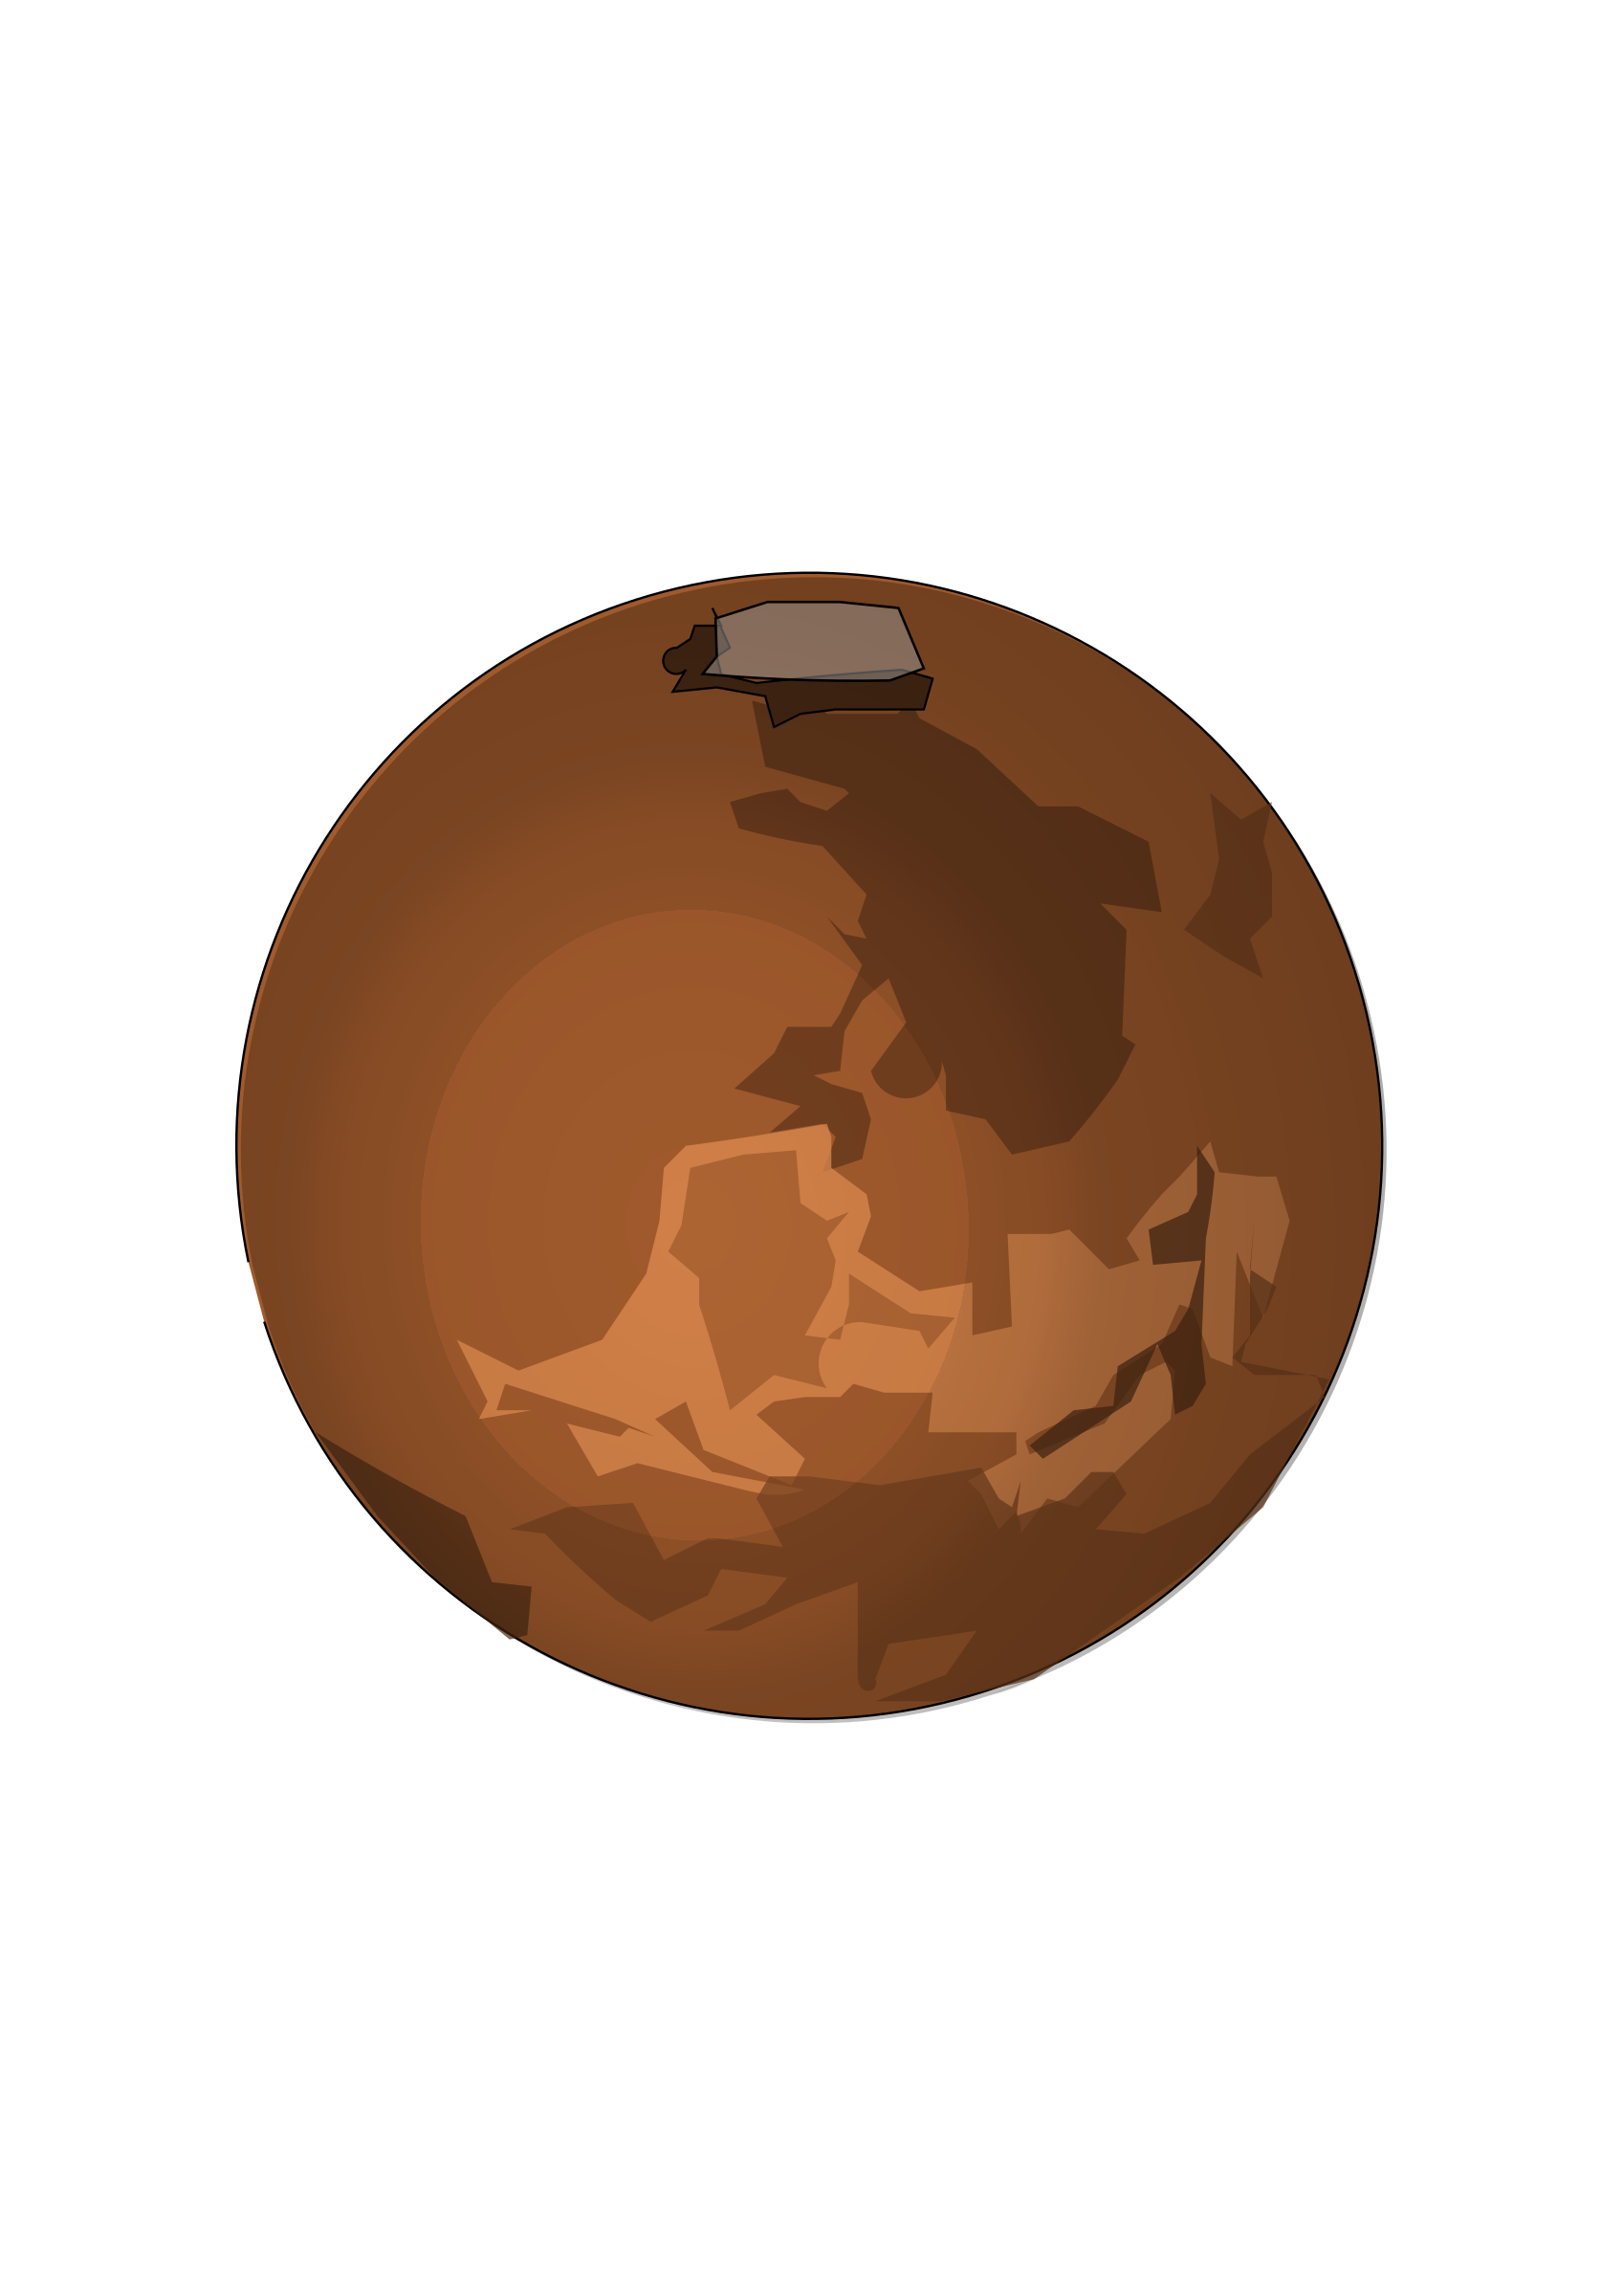 Big image png. Planets clipart planet mars